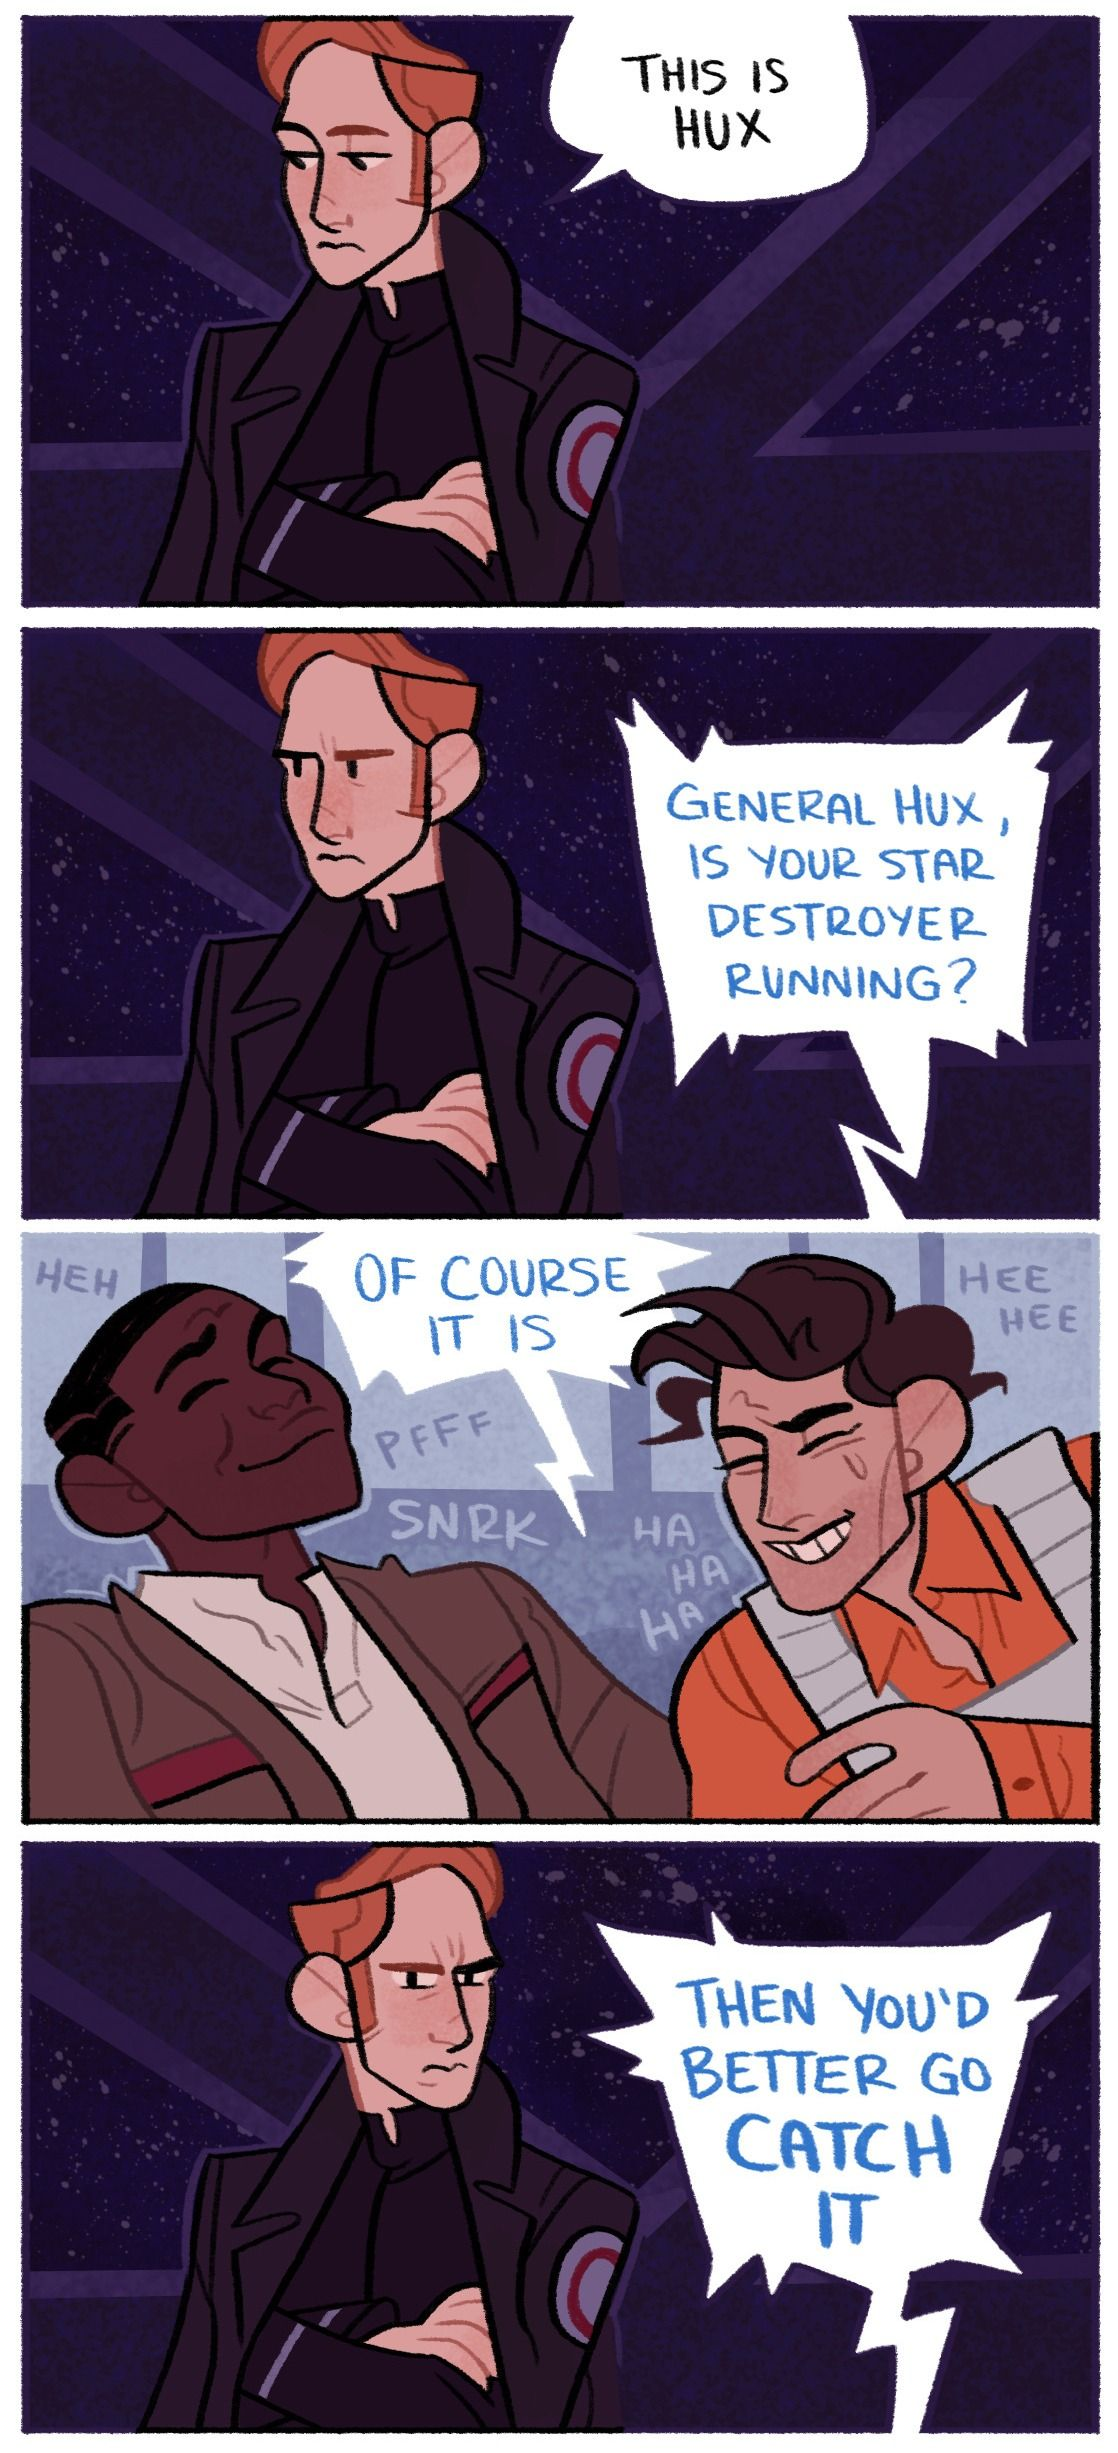 How are they even getting patched through at this point I mean wouldn't the FO have learnt to block any and all Resistance transmissions because of Poe kriffing Dameron. Who may or may not be the greatest troll in the history of the galaxy far far away...